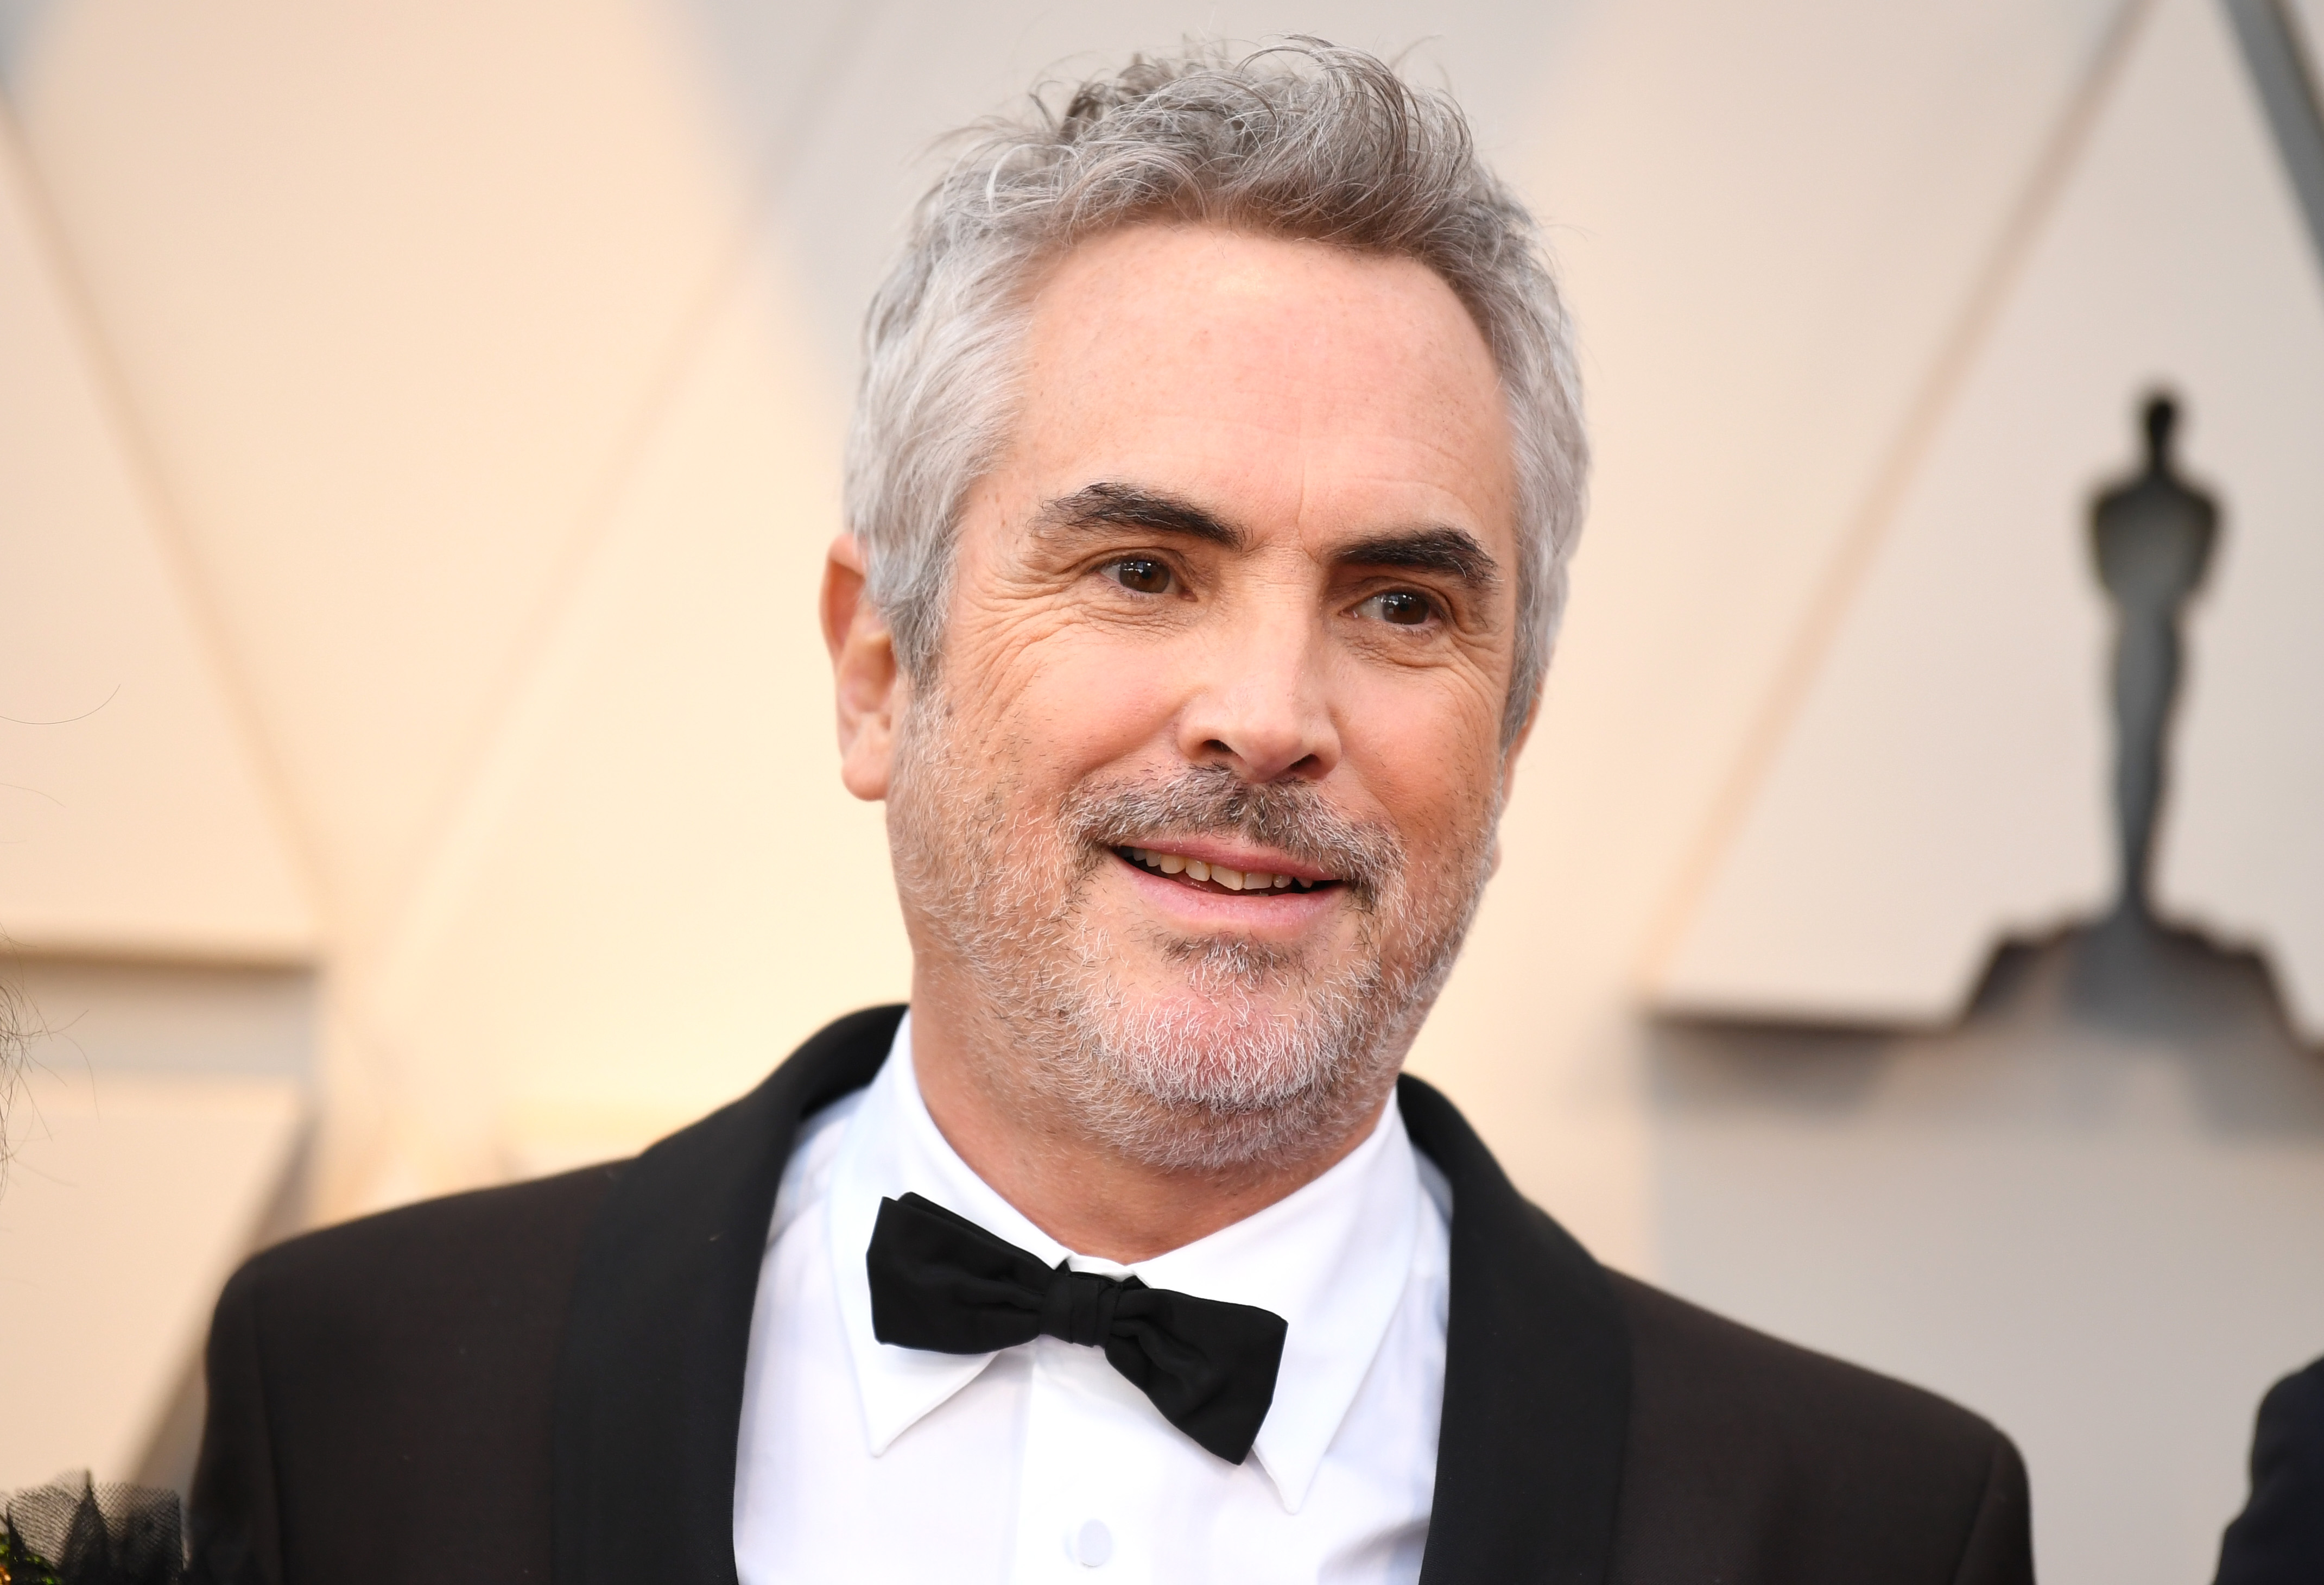 Alfonso Cuaron Was a Pioneer With Netflix, But Signed An Exclusive TV Deal With Apple